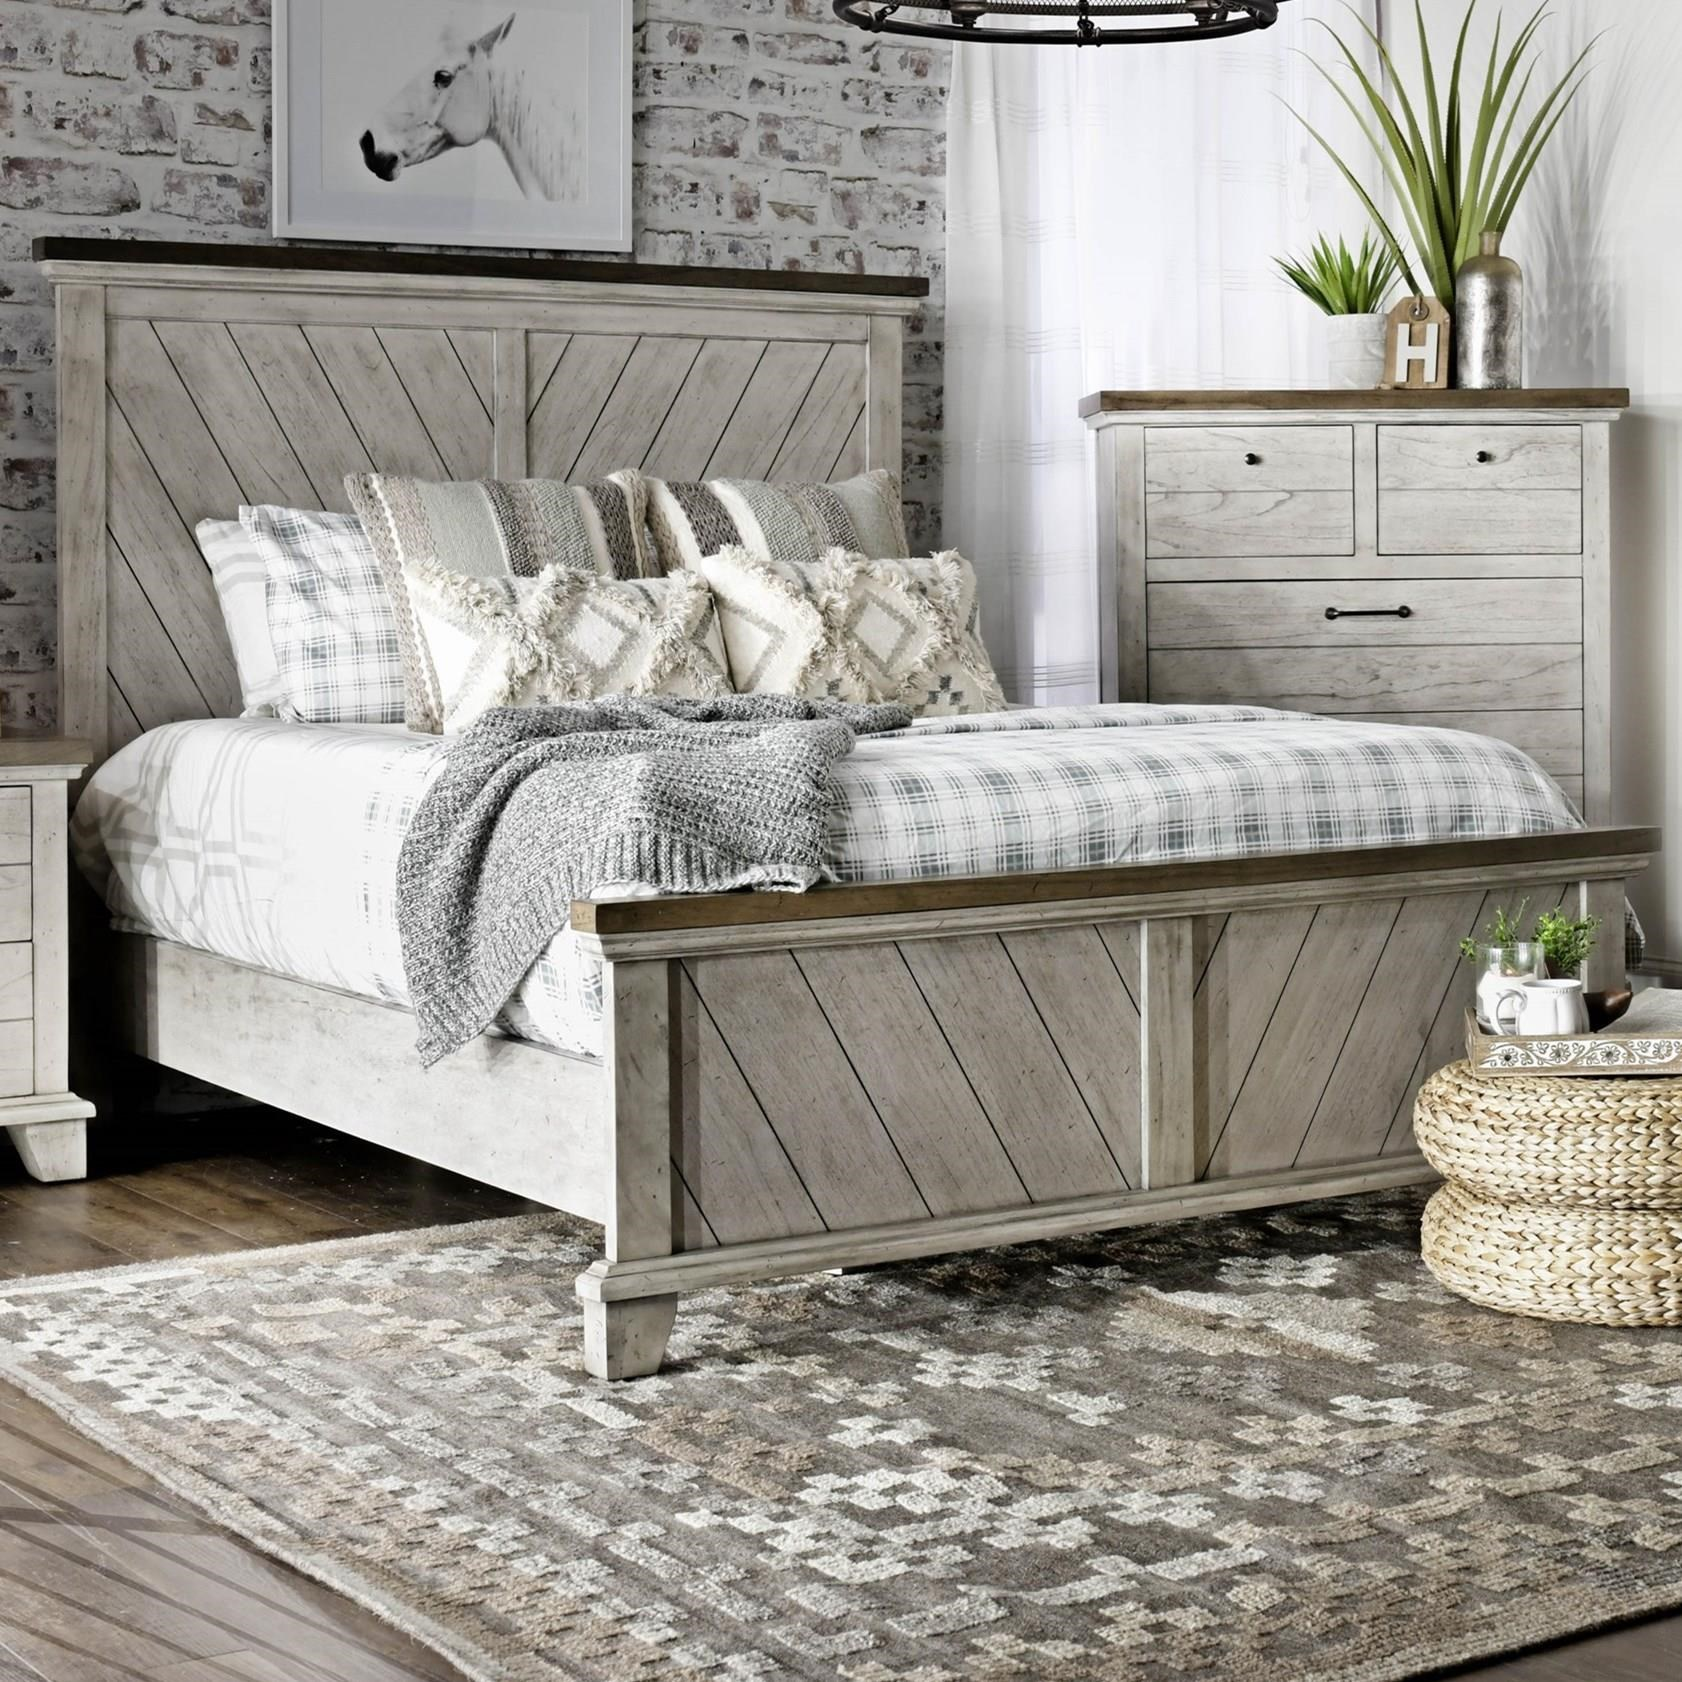 Bear Creek Queen Panel Bed by Steve Silver at Standard Furniture